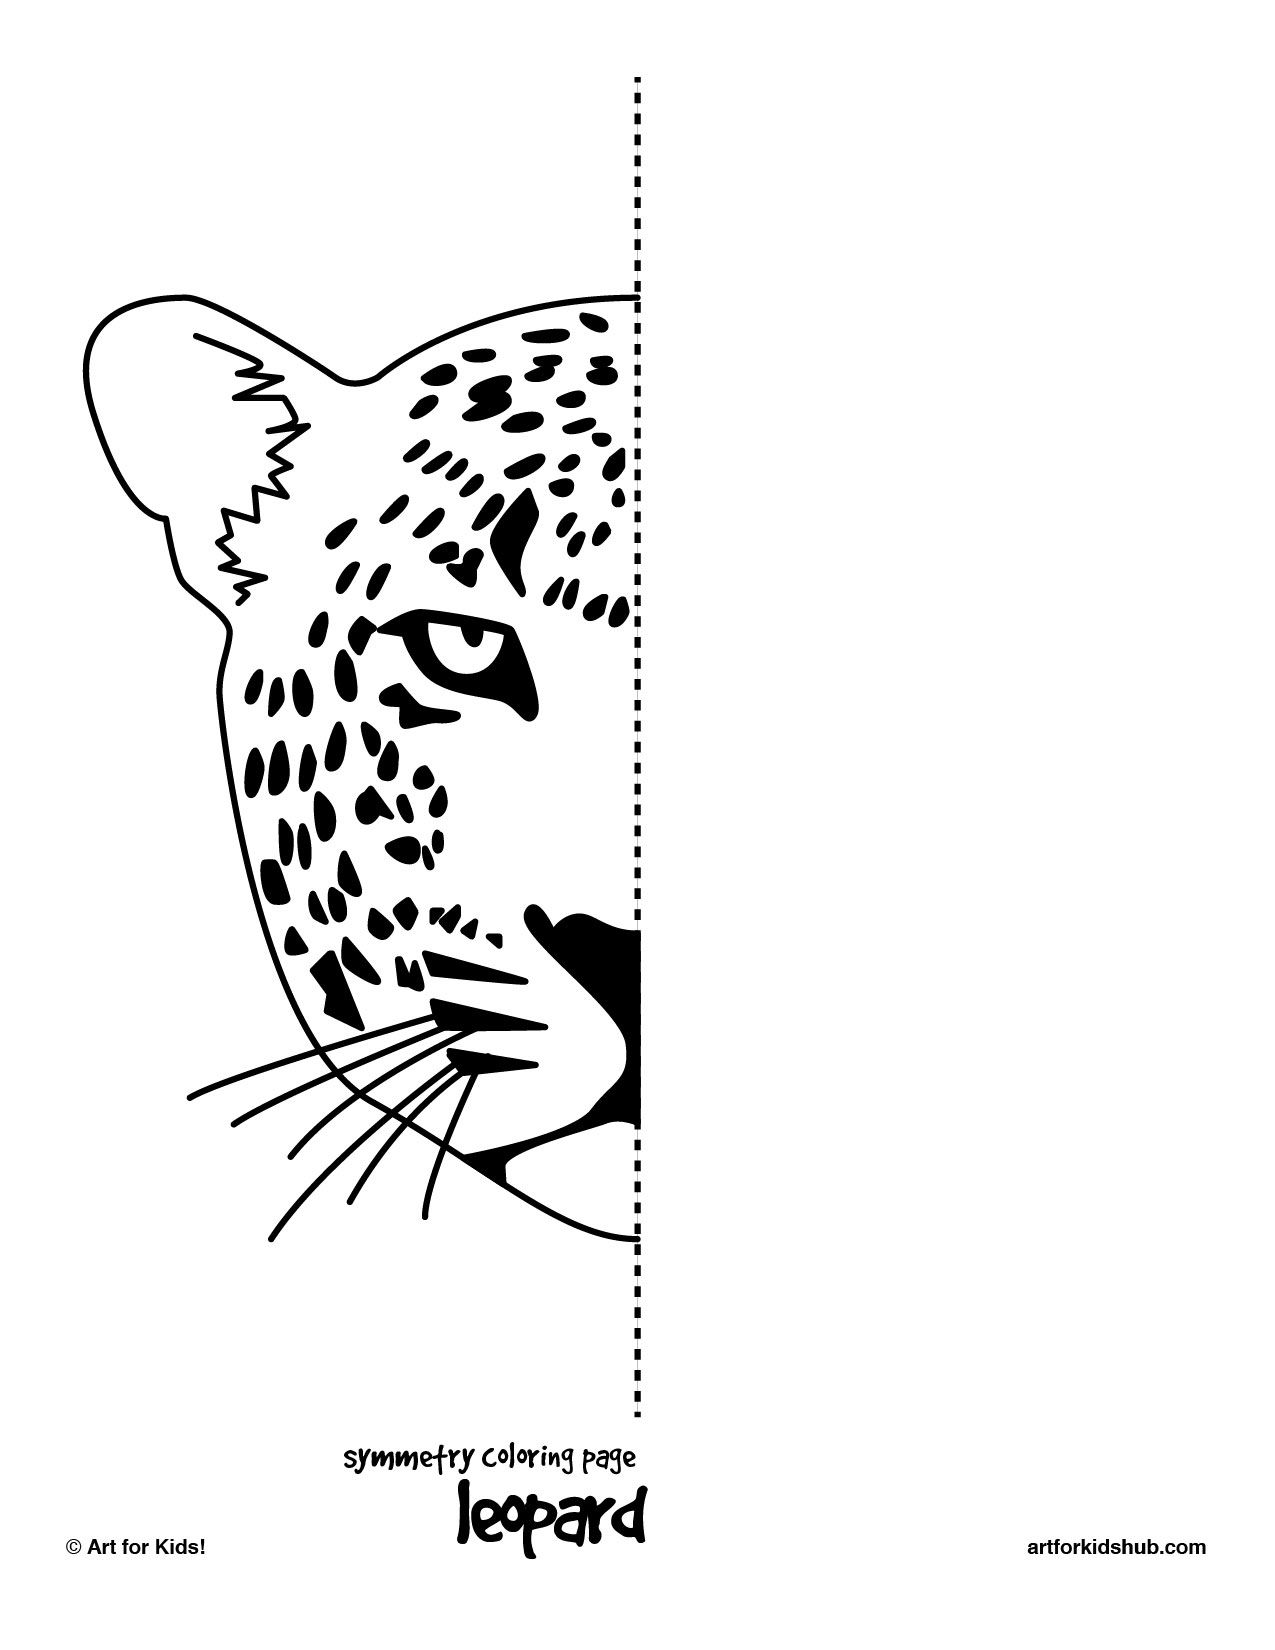 Uncategorized Animal Symmetry Worksheet leopard symmetry jpg spiegeln pinterest 6 free coloring pages cat art for kids hub